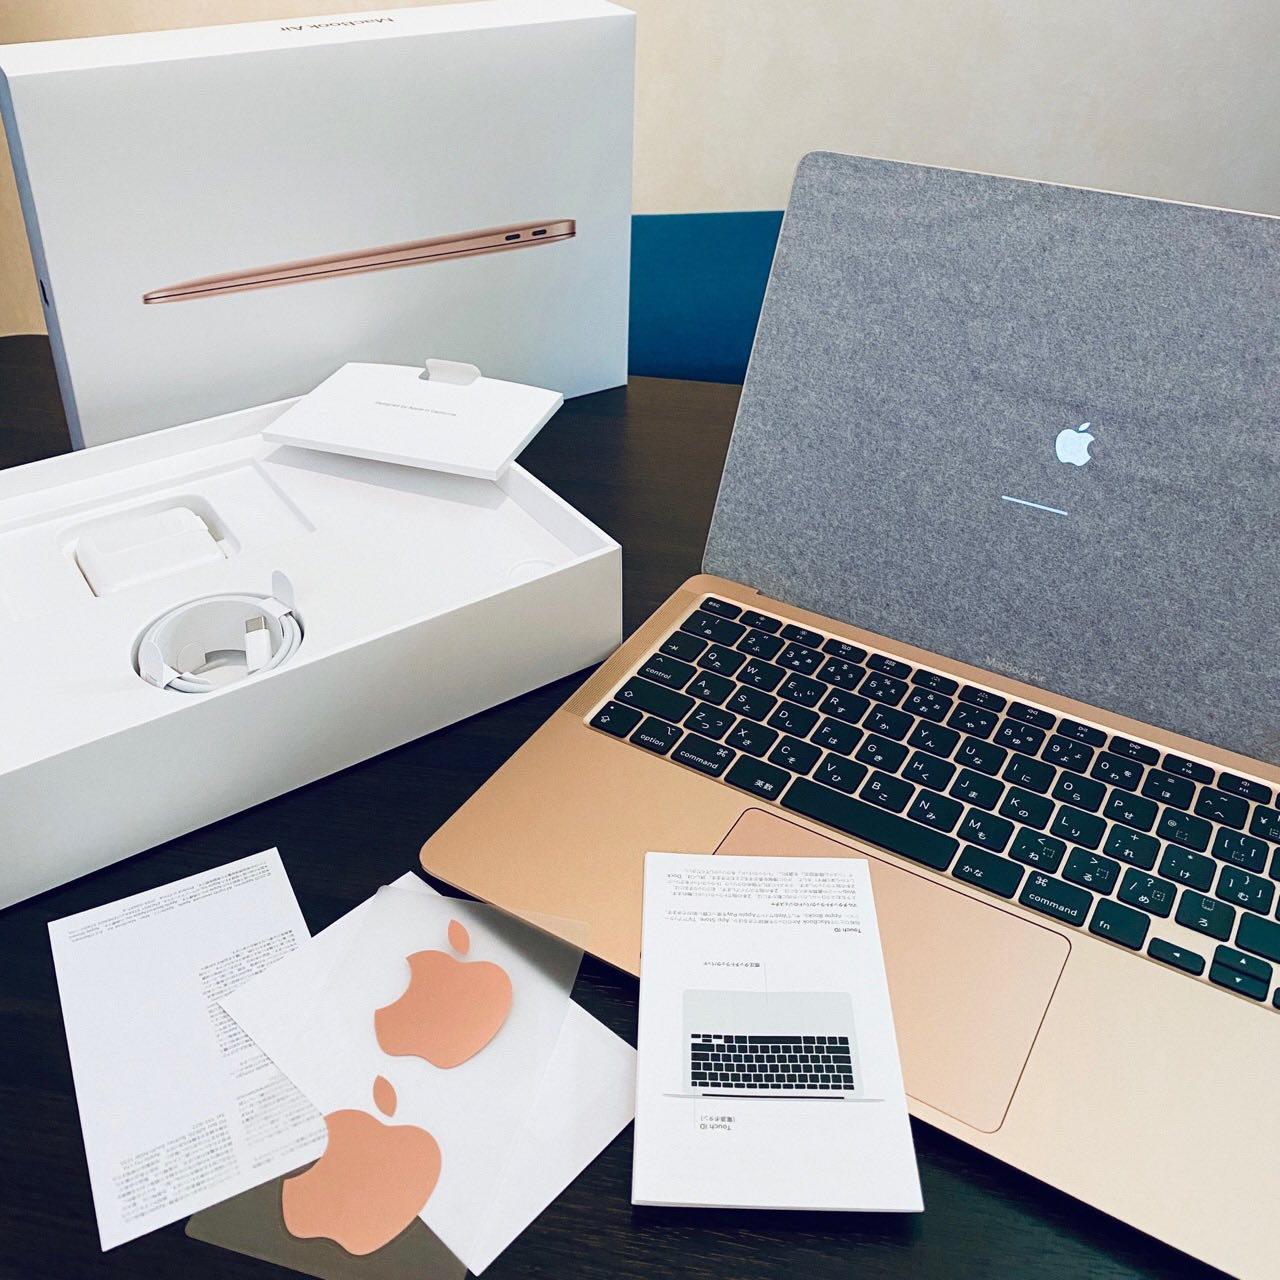 MacBook Air 2020 開けたらすぐに電源が入ってびびる(;´∀`) そういえばこういうのだったわ。 https://t.co/4nF0BKG0AS